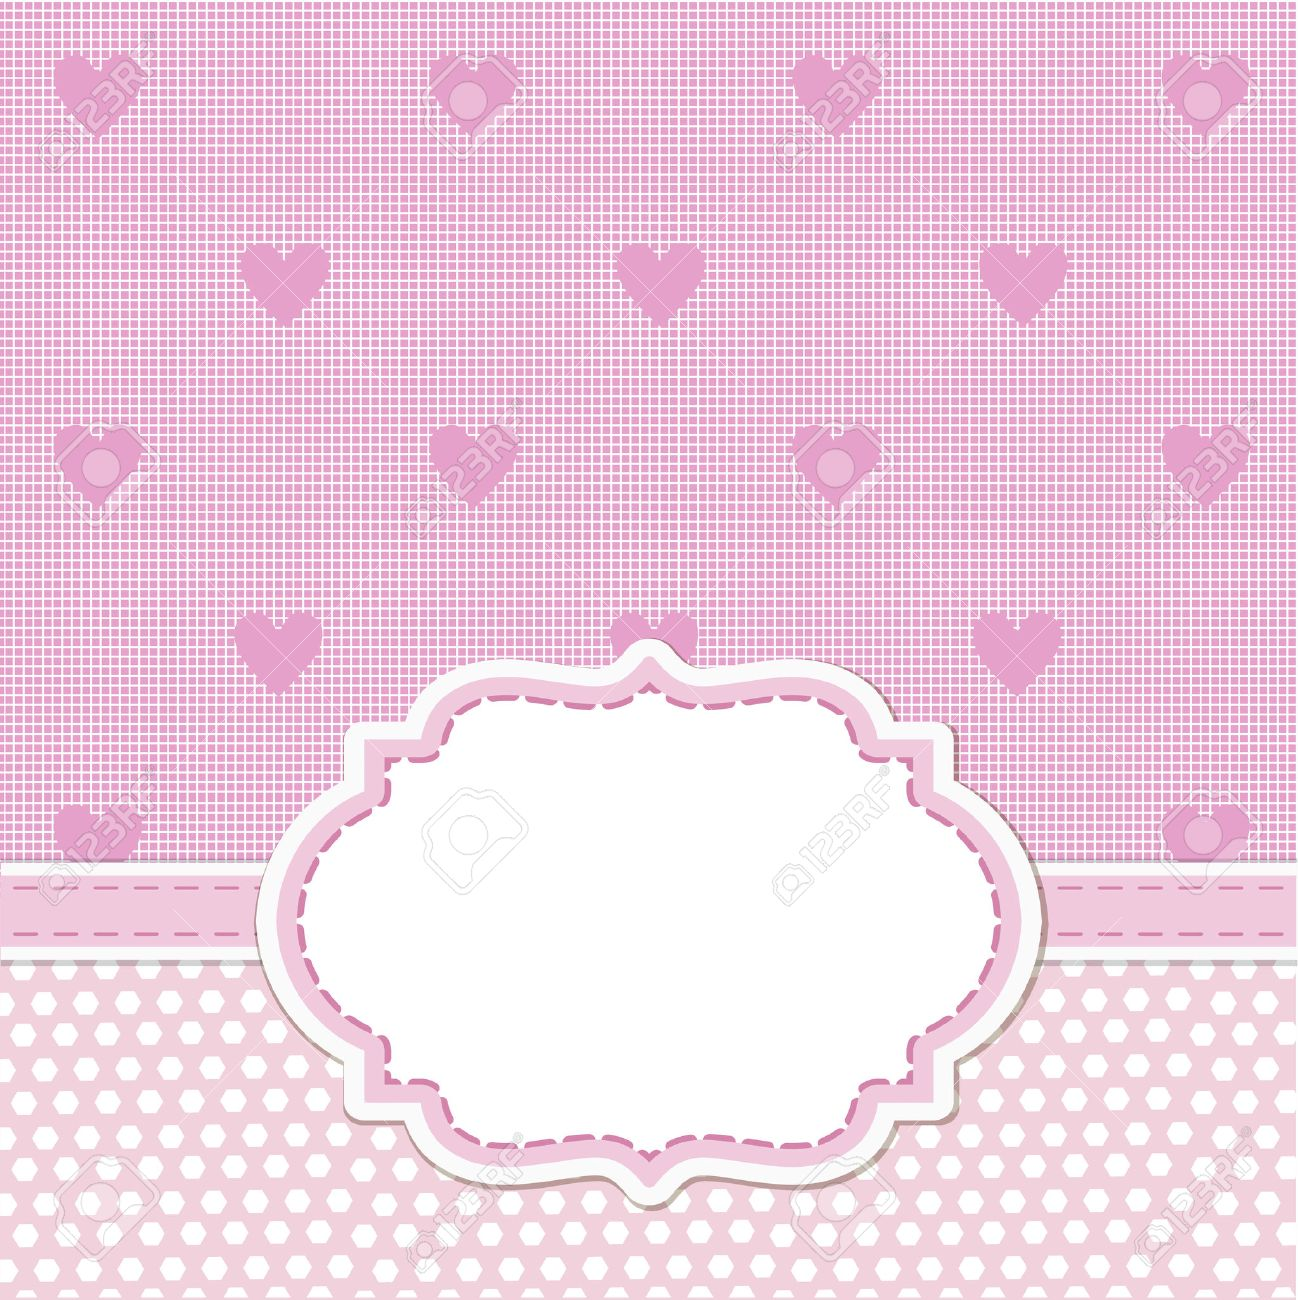 Pink Card Invitation For Baby Shower Wedding Or Birthday Party Royalty Free Cliparts Vectors And Stock Illustration Image 52741140